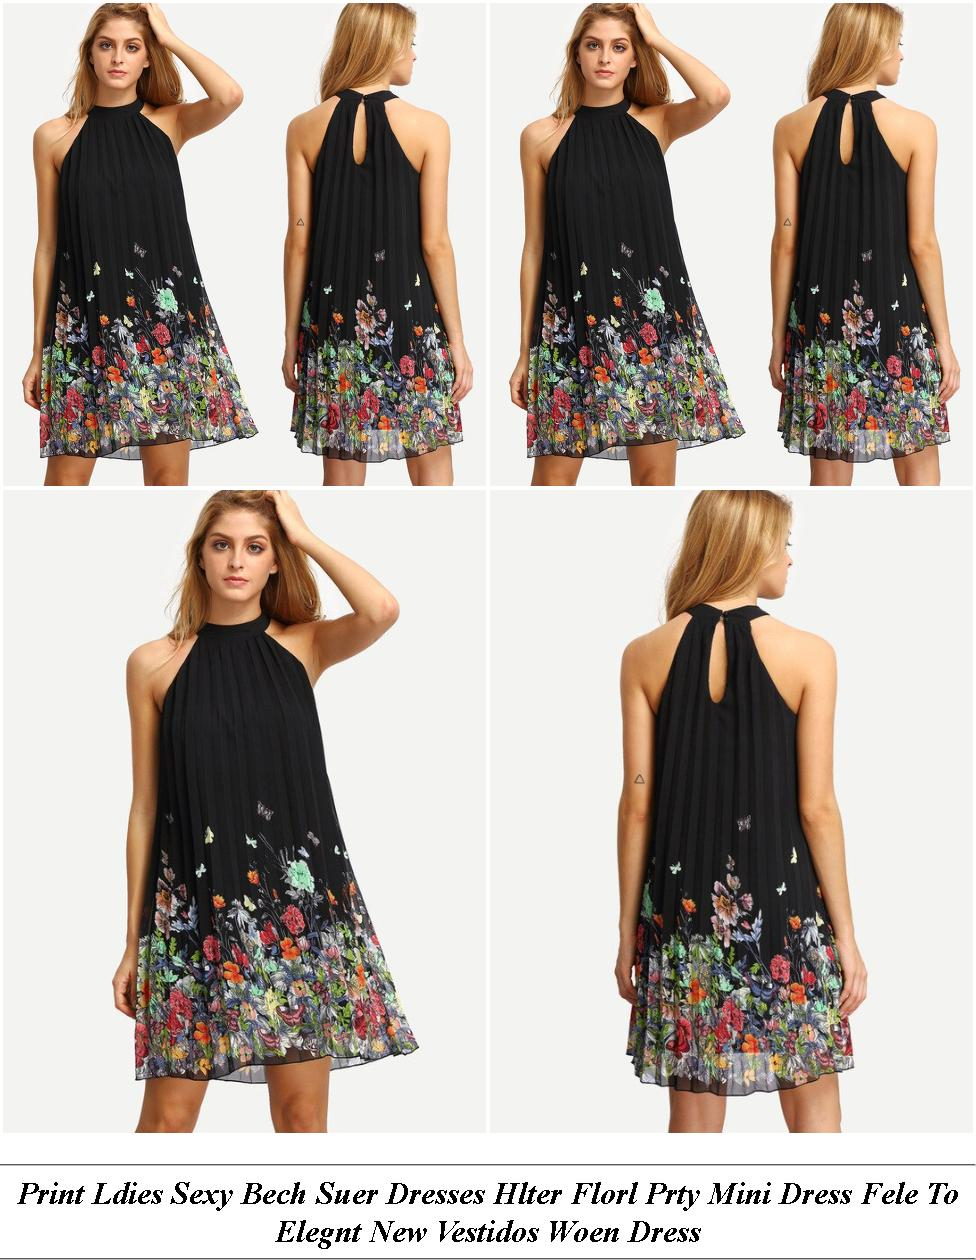 Homecoming Dresses - Summer Dresses Sale - Polka Dot Dress - Cheap Clothes Online